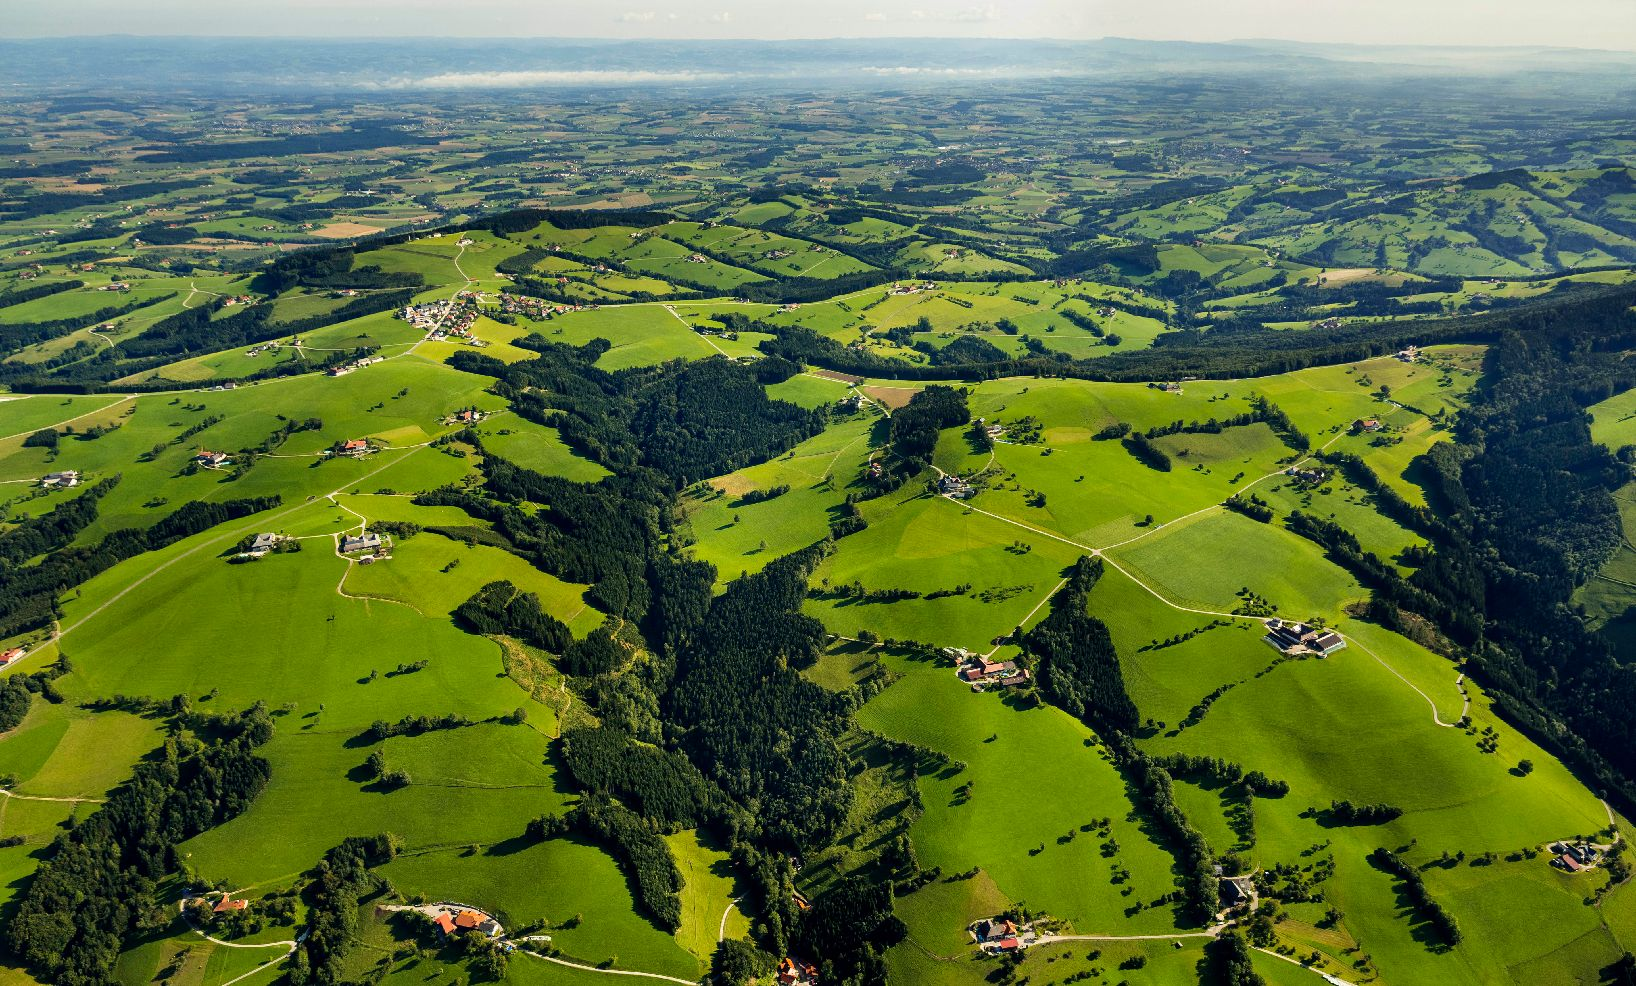 Birds-eye view of green hills